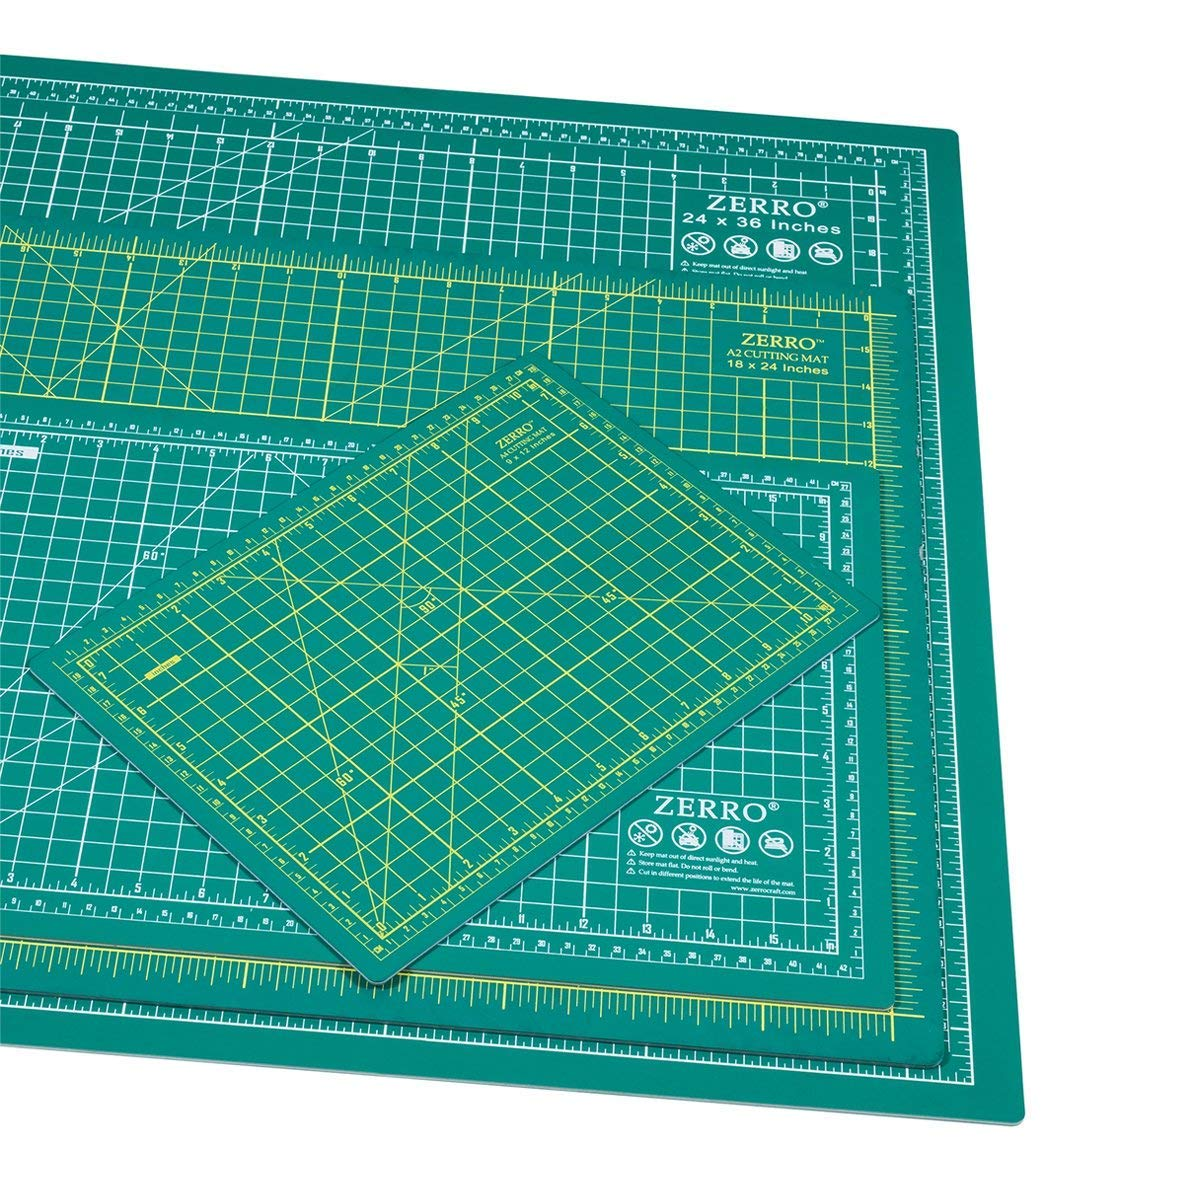 "ZERRO Self Healing Cutting Mat 24"" x 36"",Professional Double Sided Durable Non-Slip Rotary Mat for Scrapbooking, Quilting, Sewing-3mm Thick (A1)"